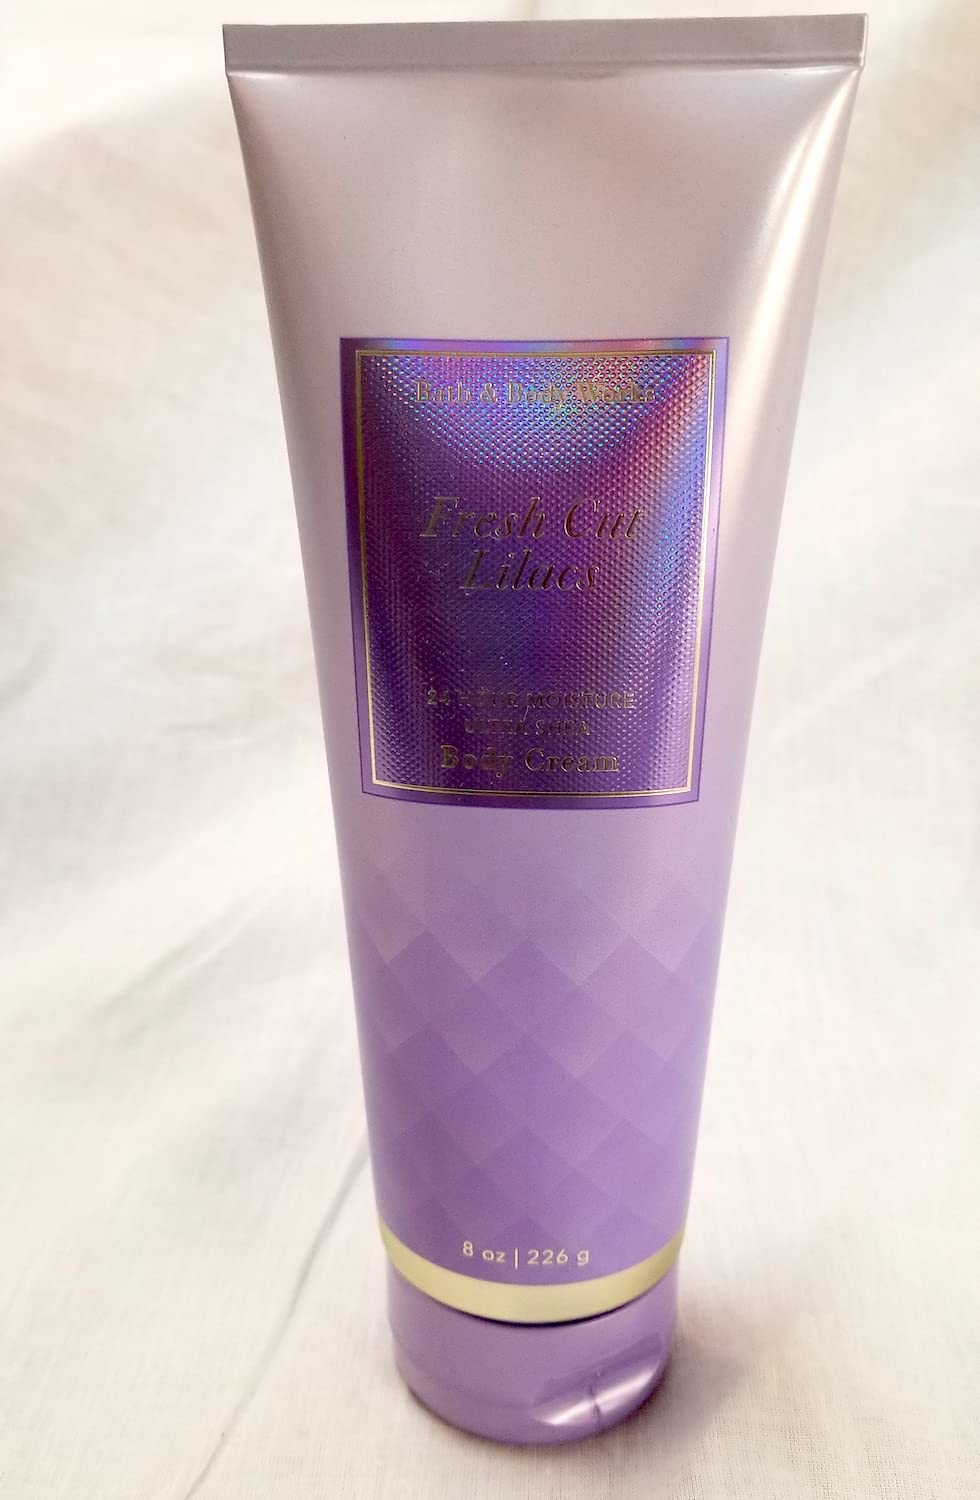 Body Care - 24 Hour Moisture Ultra Fres 8 oz Cream Complete Free Shipping online shopping Shea